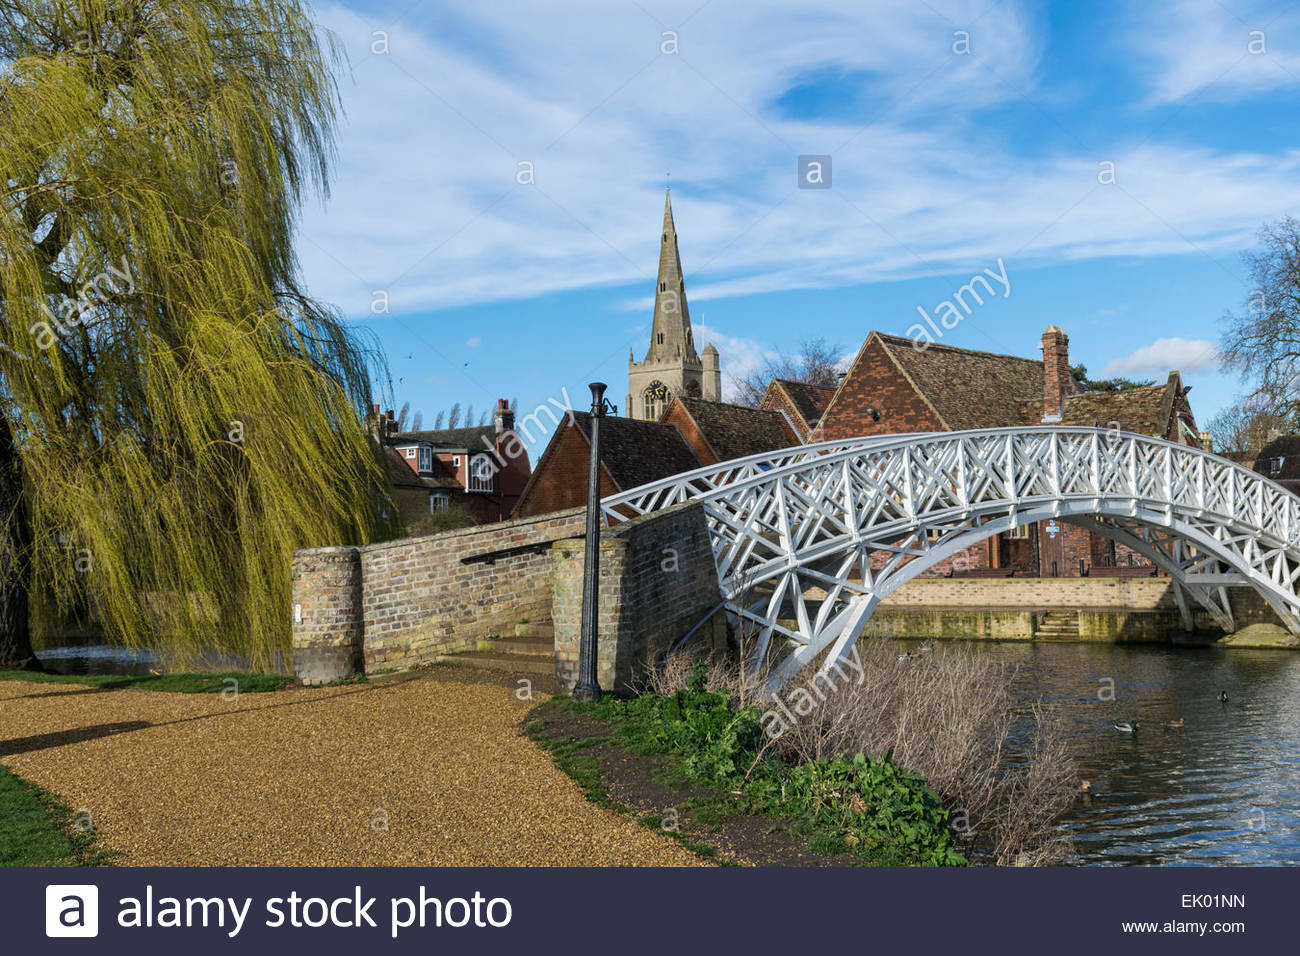 The Chinese Bridge, River Great Ouse and the spire of St Mary's Church in Godmanchester, Cambridgeshire, England - Stock Image